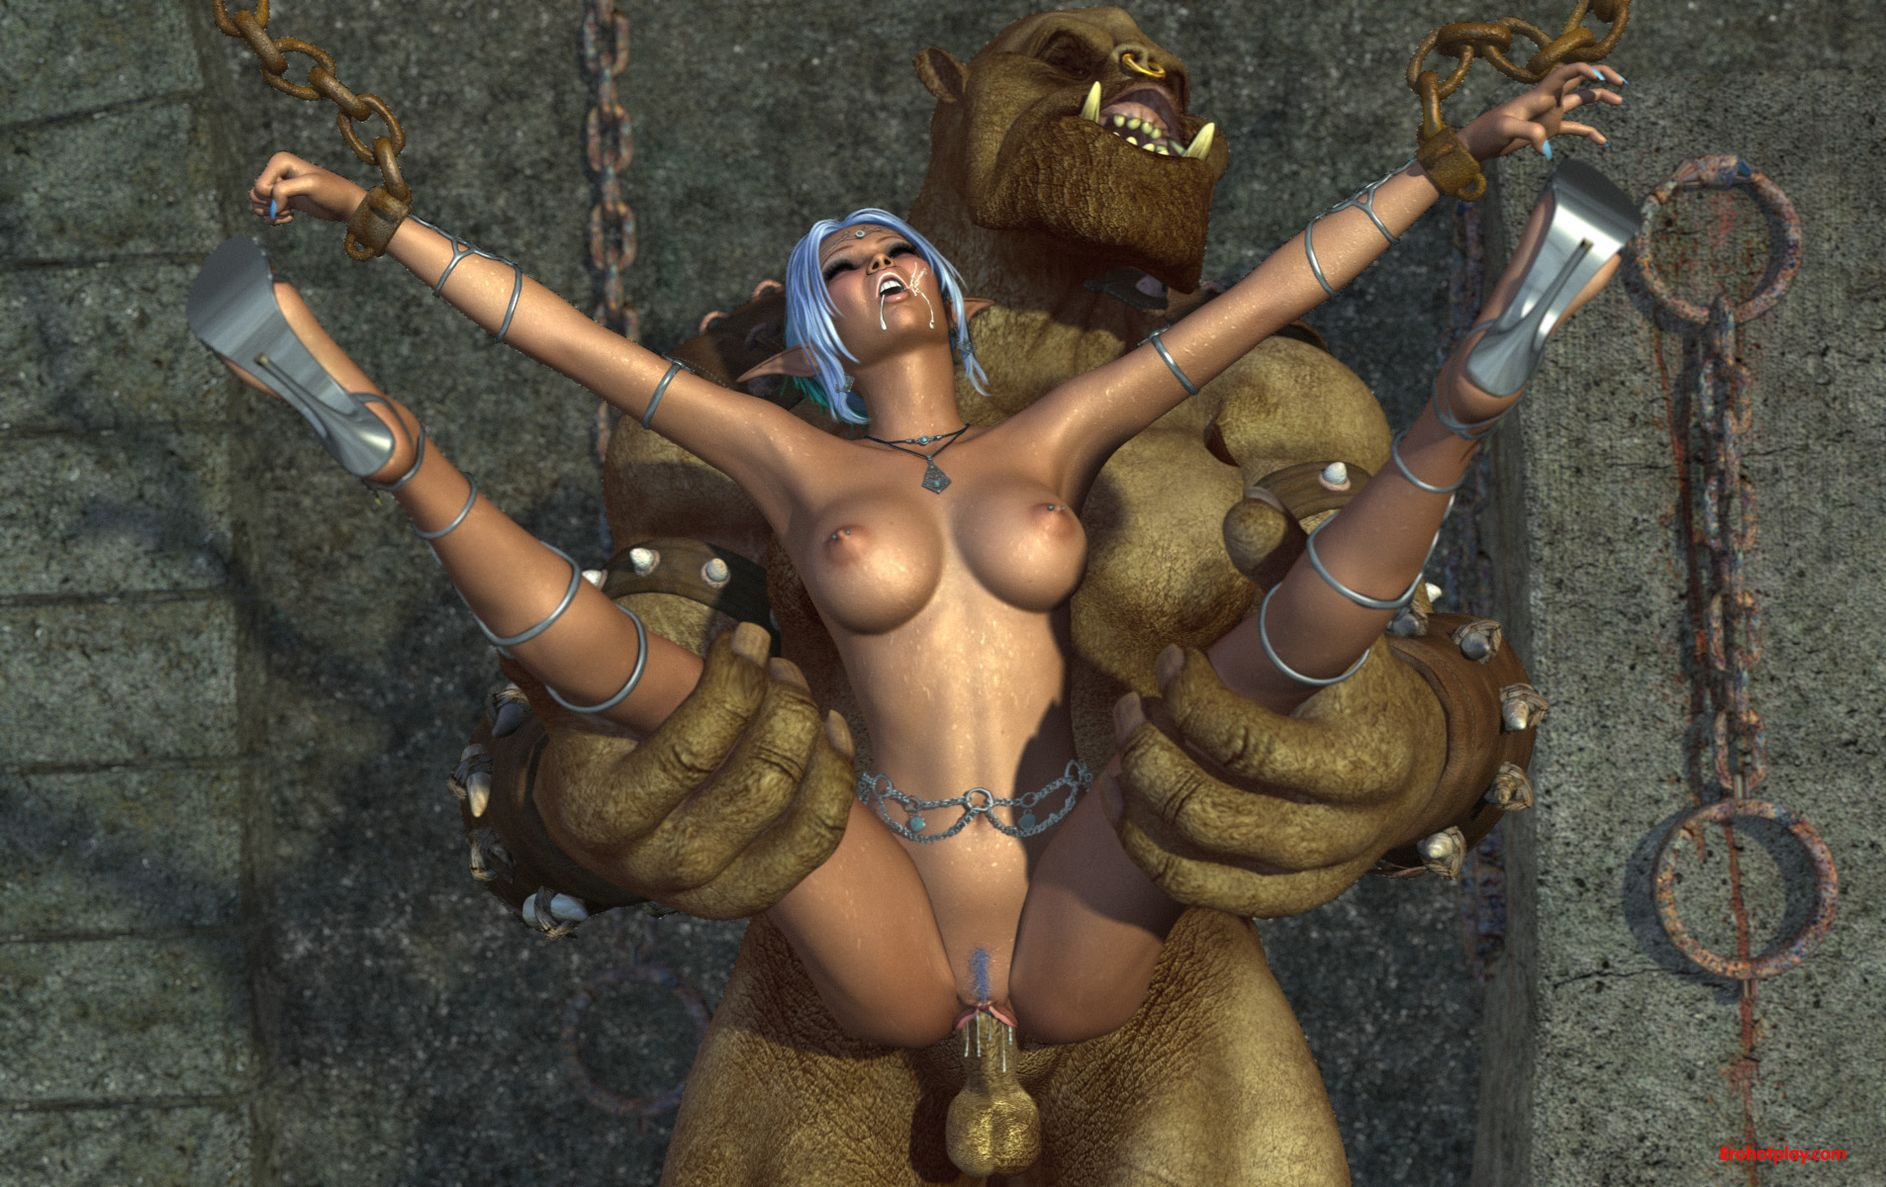 Elf dwarf demon female nude porno pictures